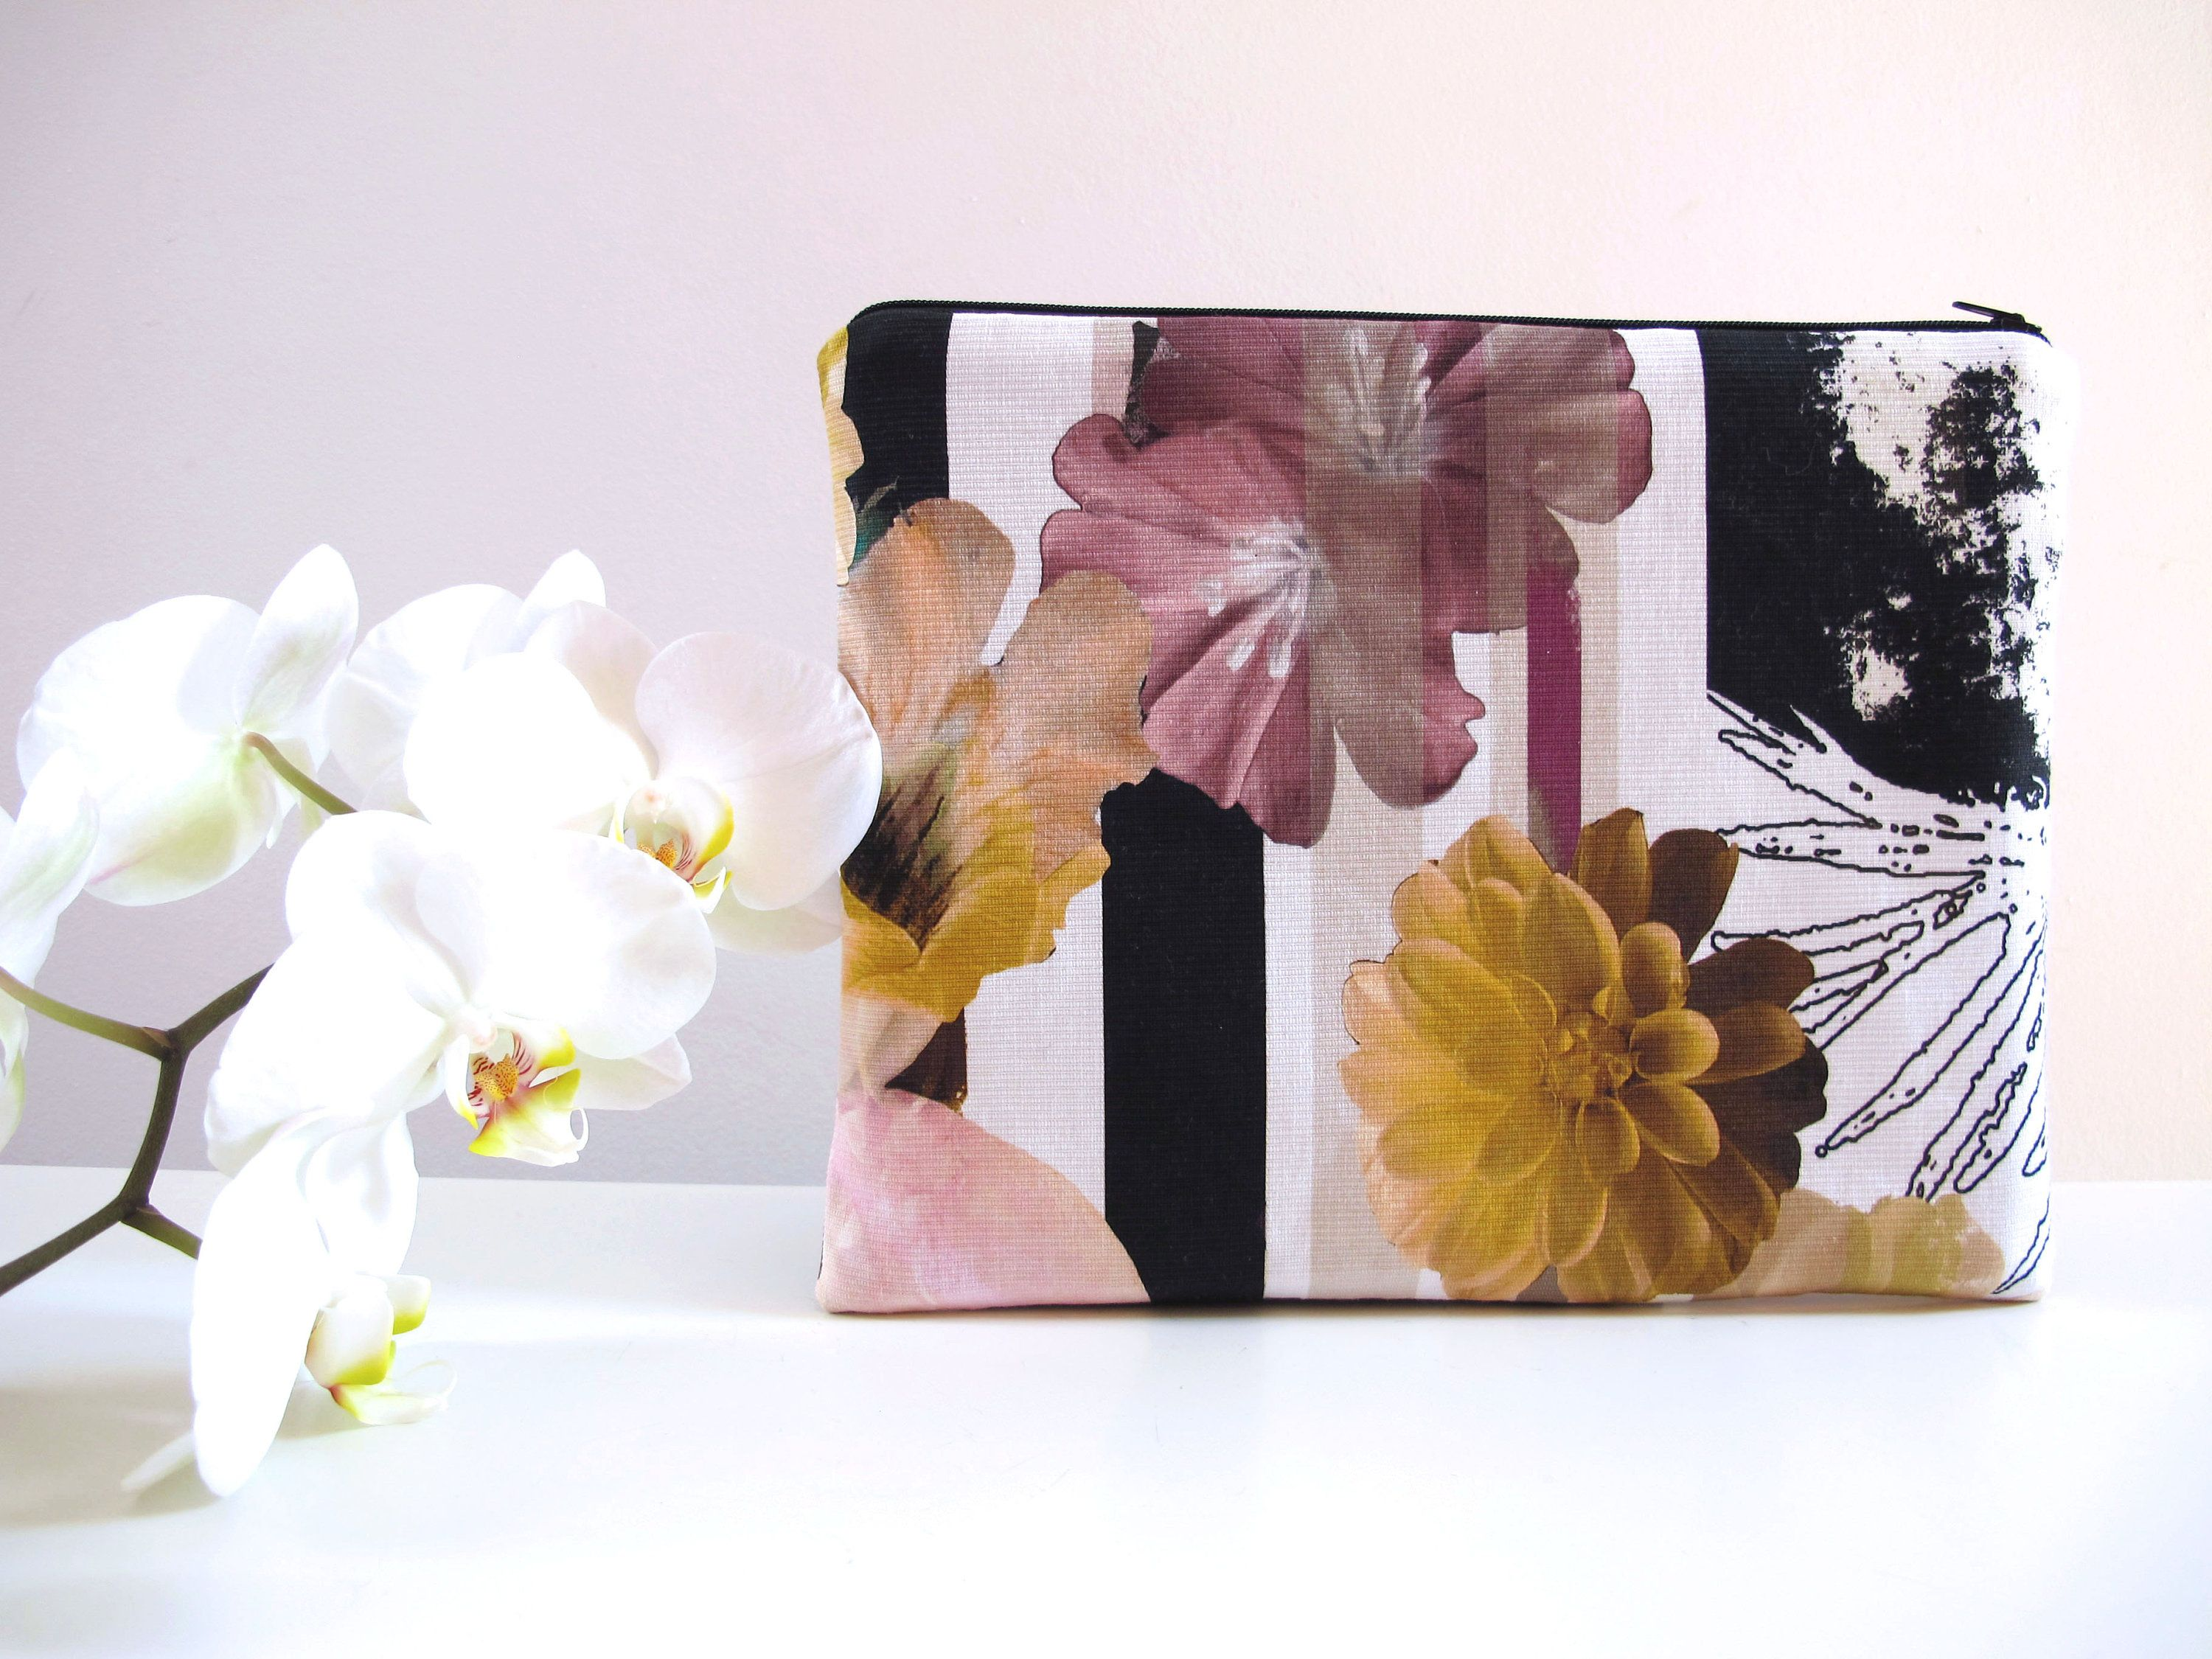 Fiori Viola Gialli.Yellow And Purple Flower Clutch Bag Fiori Viola Fiori In